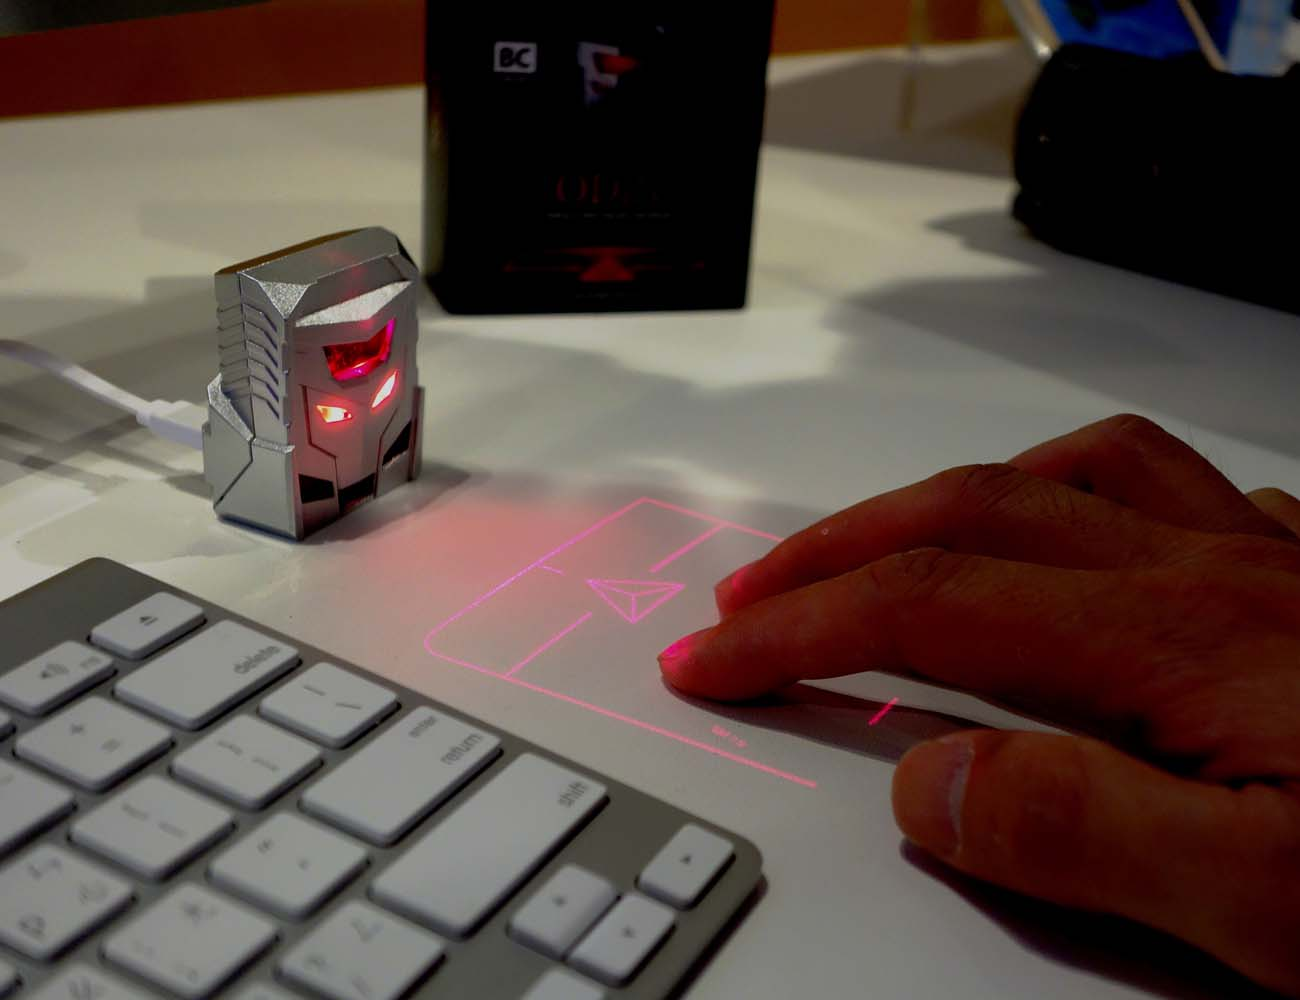 ODiN – World's First Projection Mouse